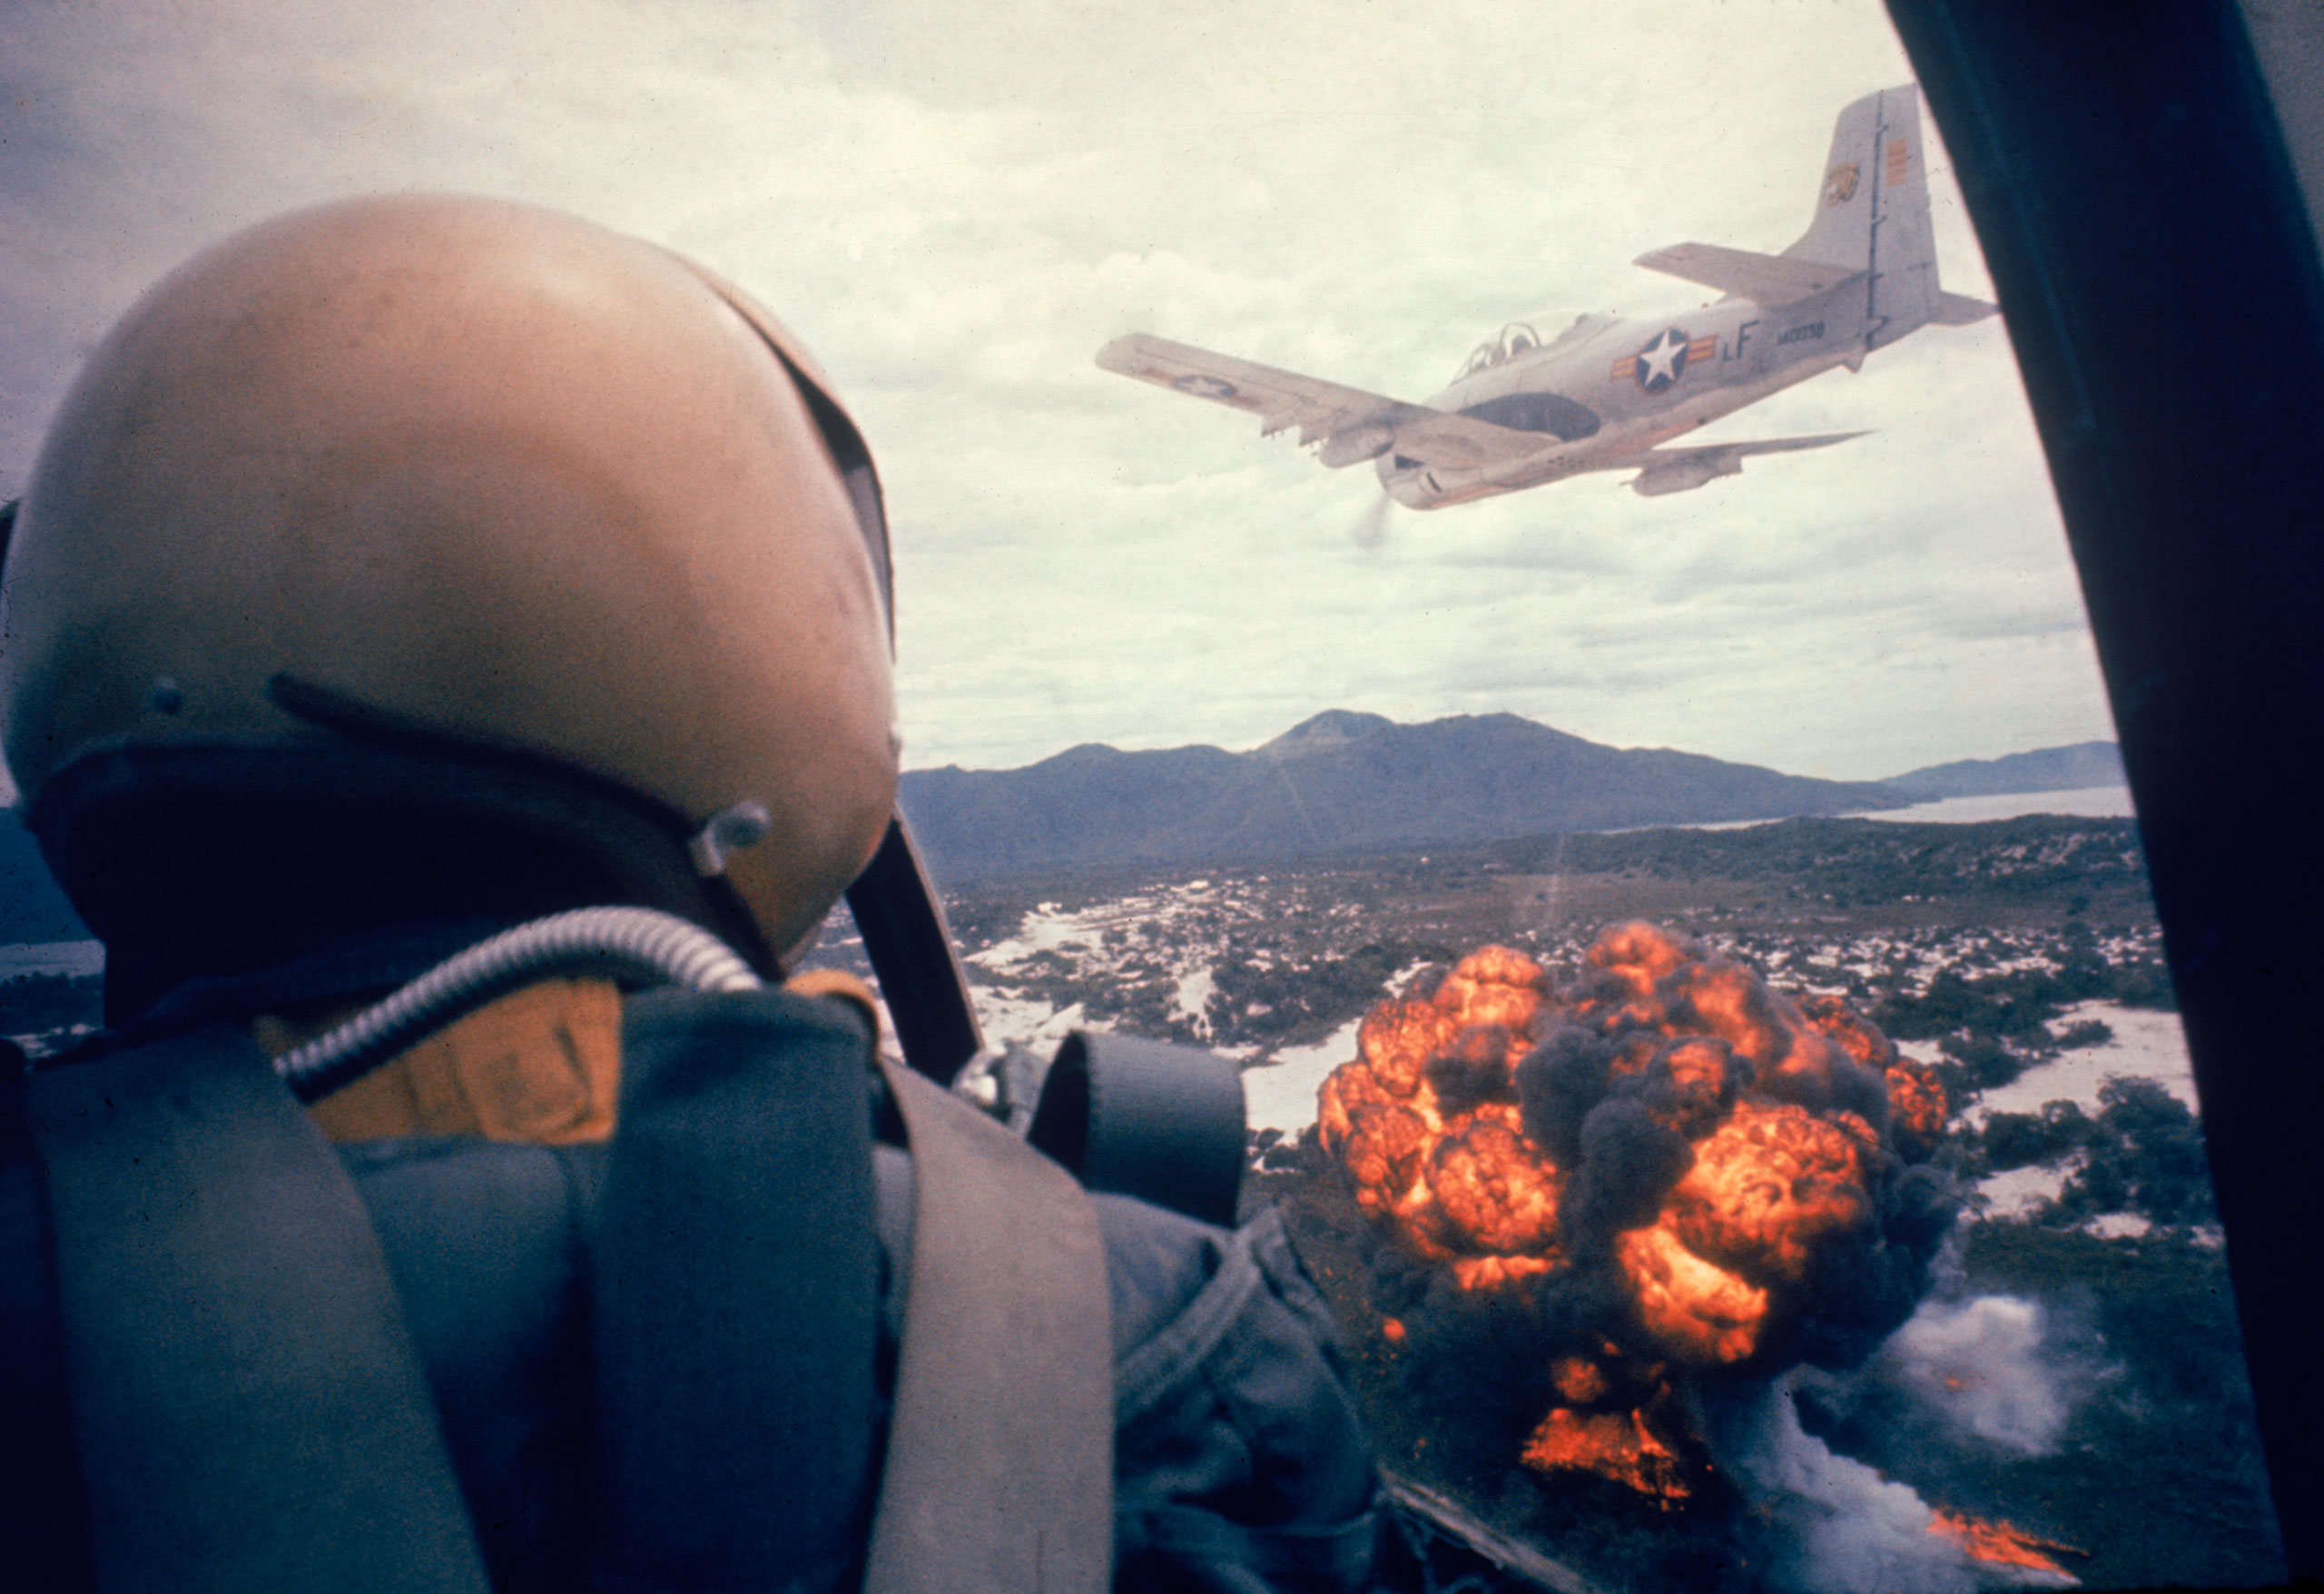 American jets drop napalm on Viet Cong positions early in the Vietnam conflict in 1963.